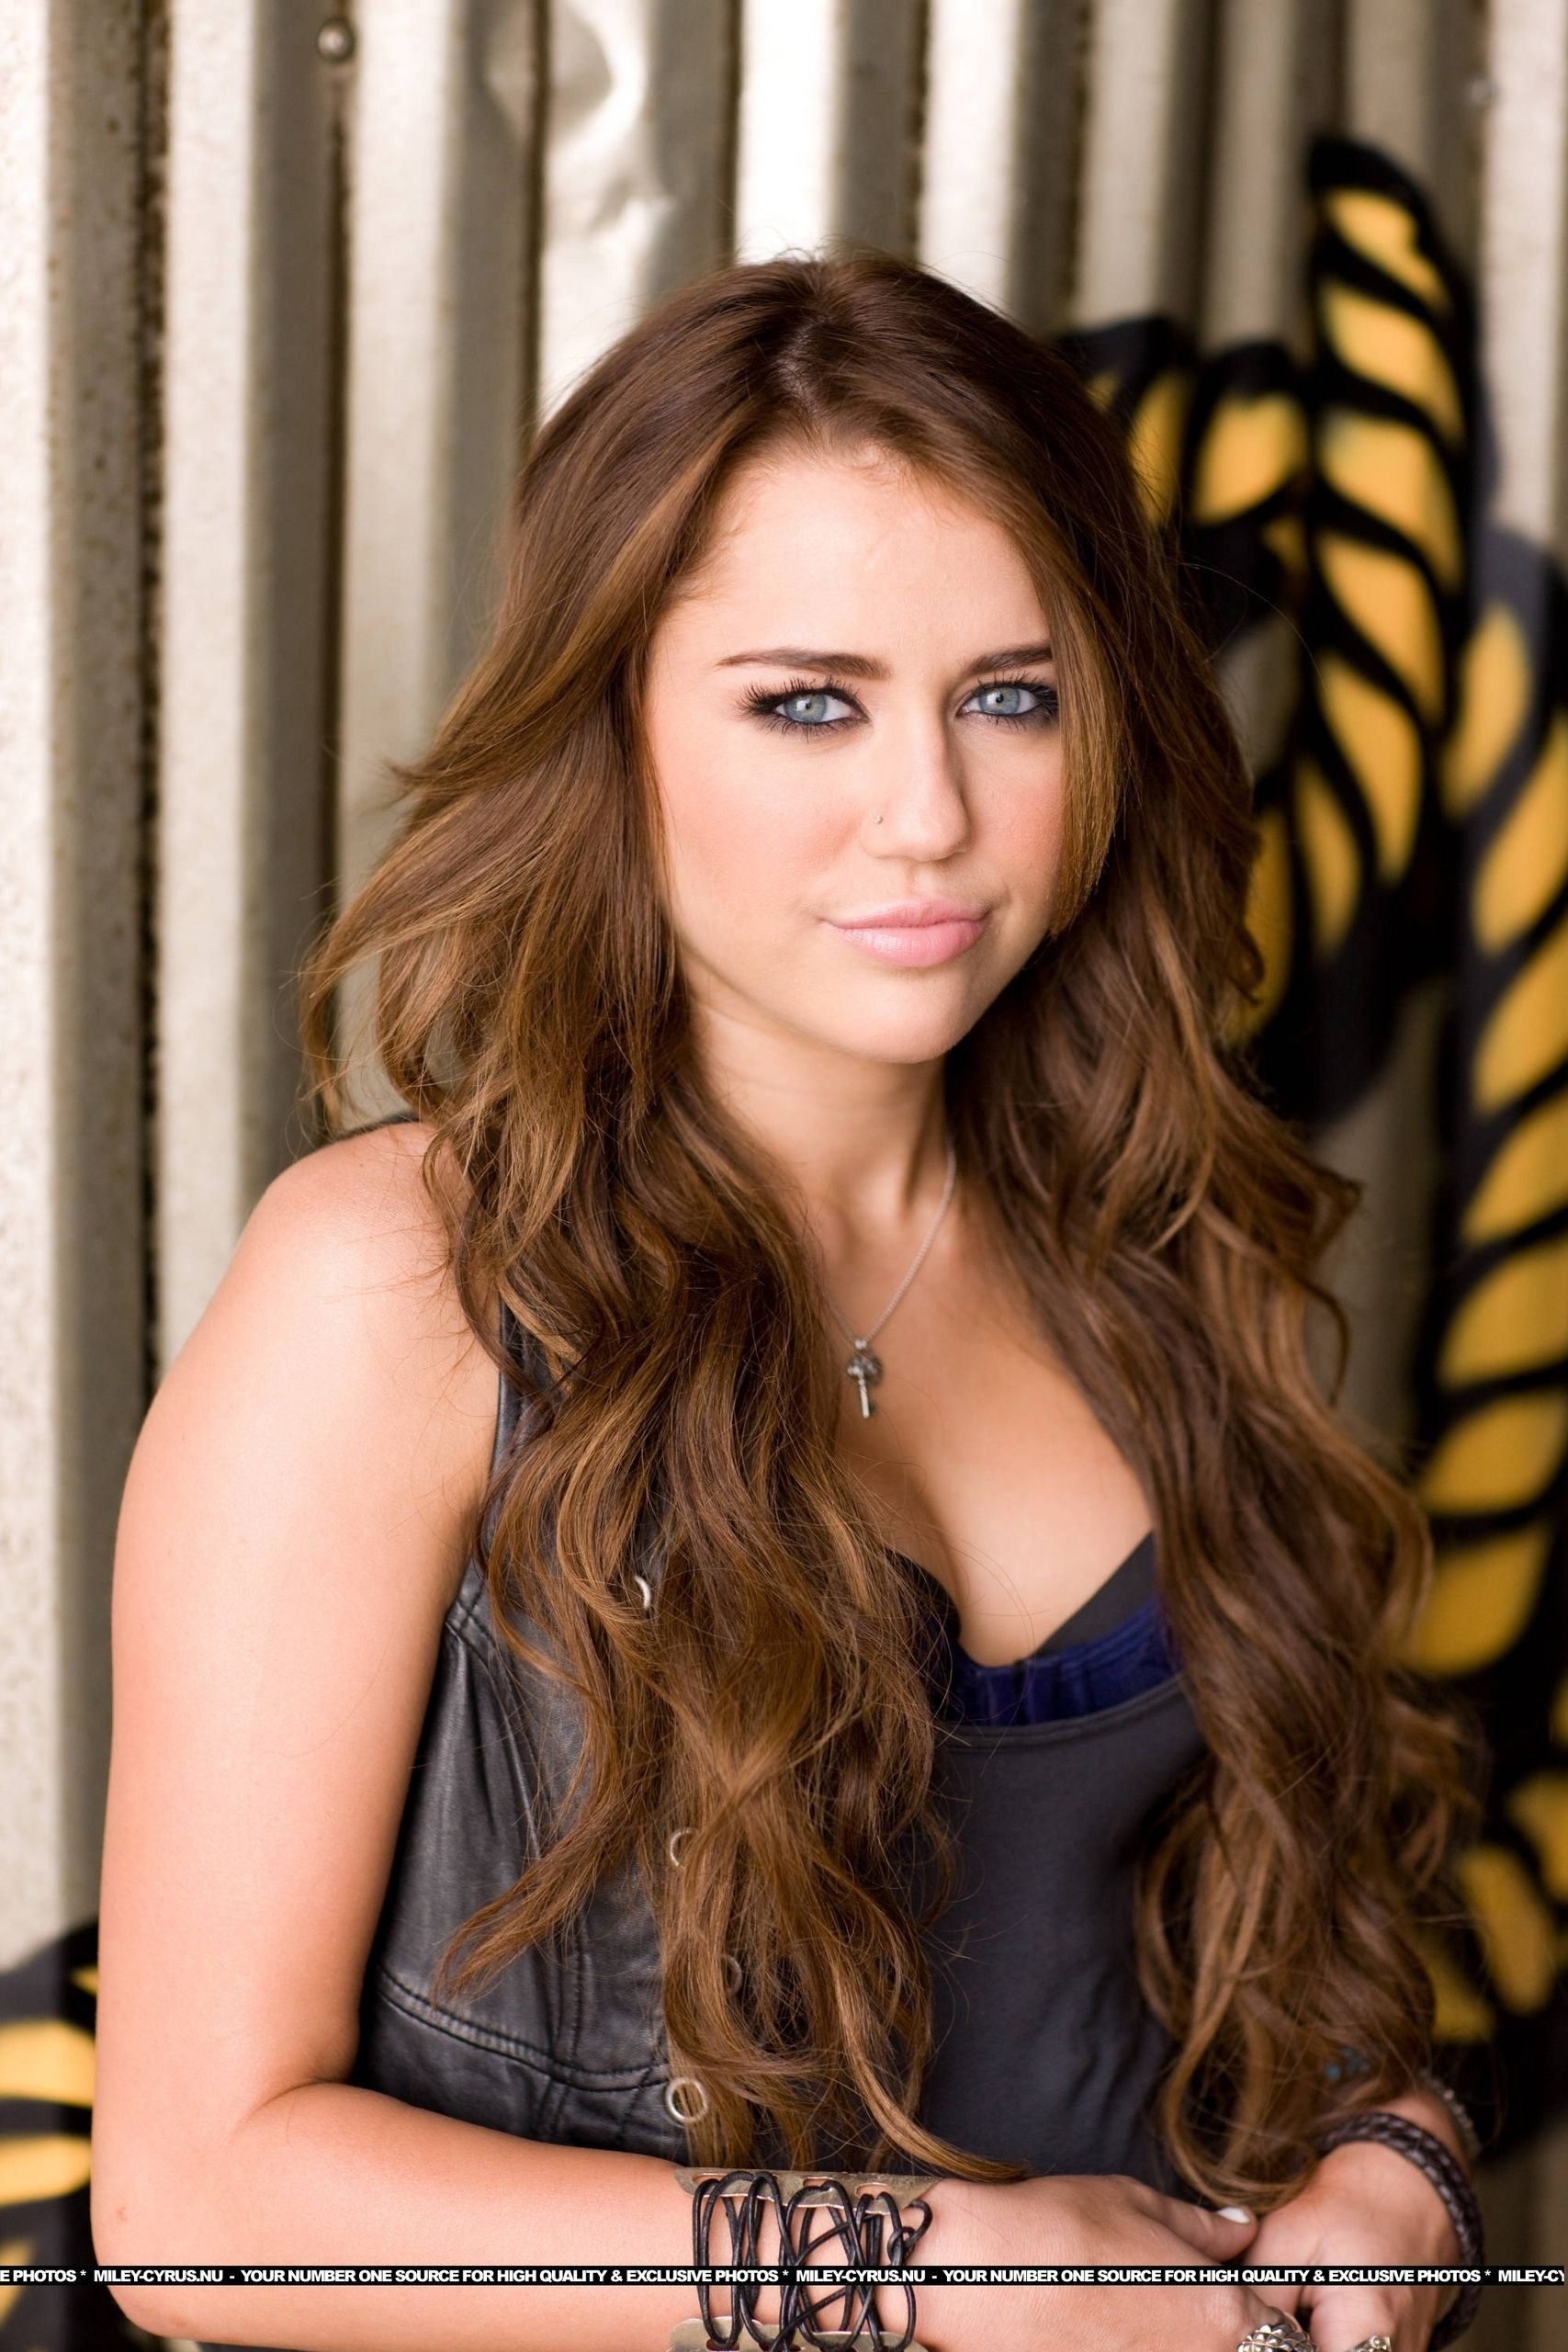 Pin by Anahizza Acevedo on Mylie Cyrus Best Miley cyrus